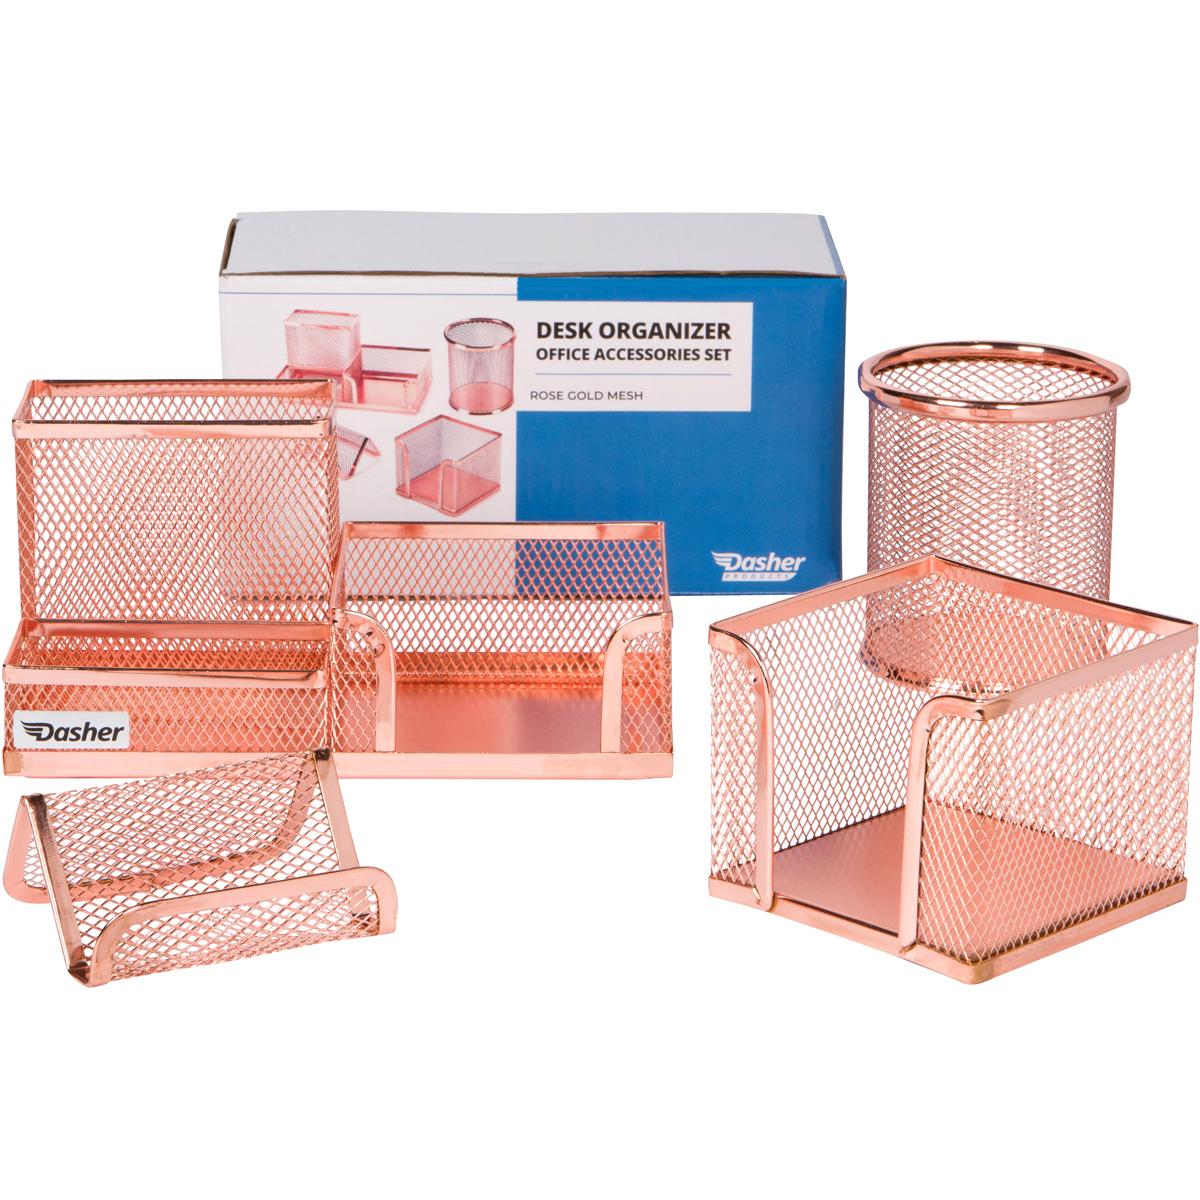 Groovy Desk Organizer Office Accessories Set Set Of 4 Rose Gold Desk Accessories Mesh Desk Set Includes Pen Case Sticky Note Holder Business Card Tray Home Interior And Landscaping Sapresignezvosmurscom